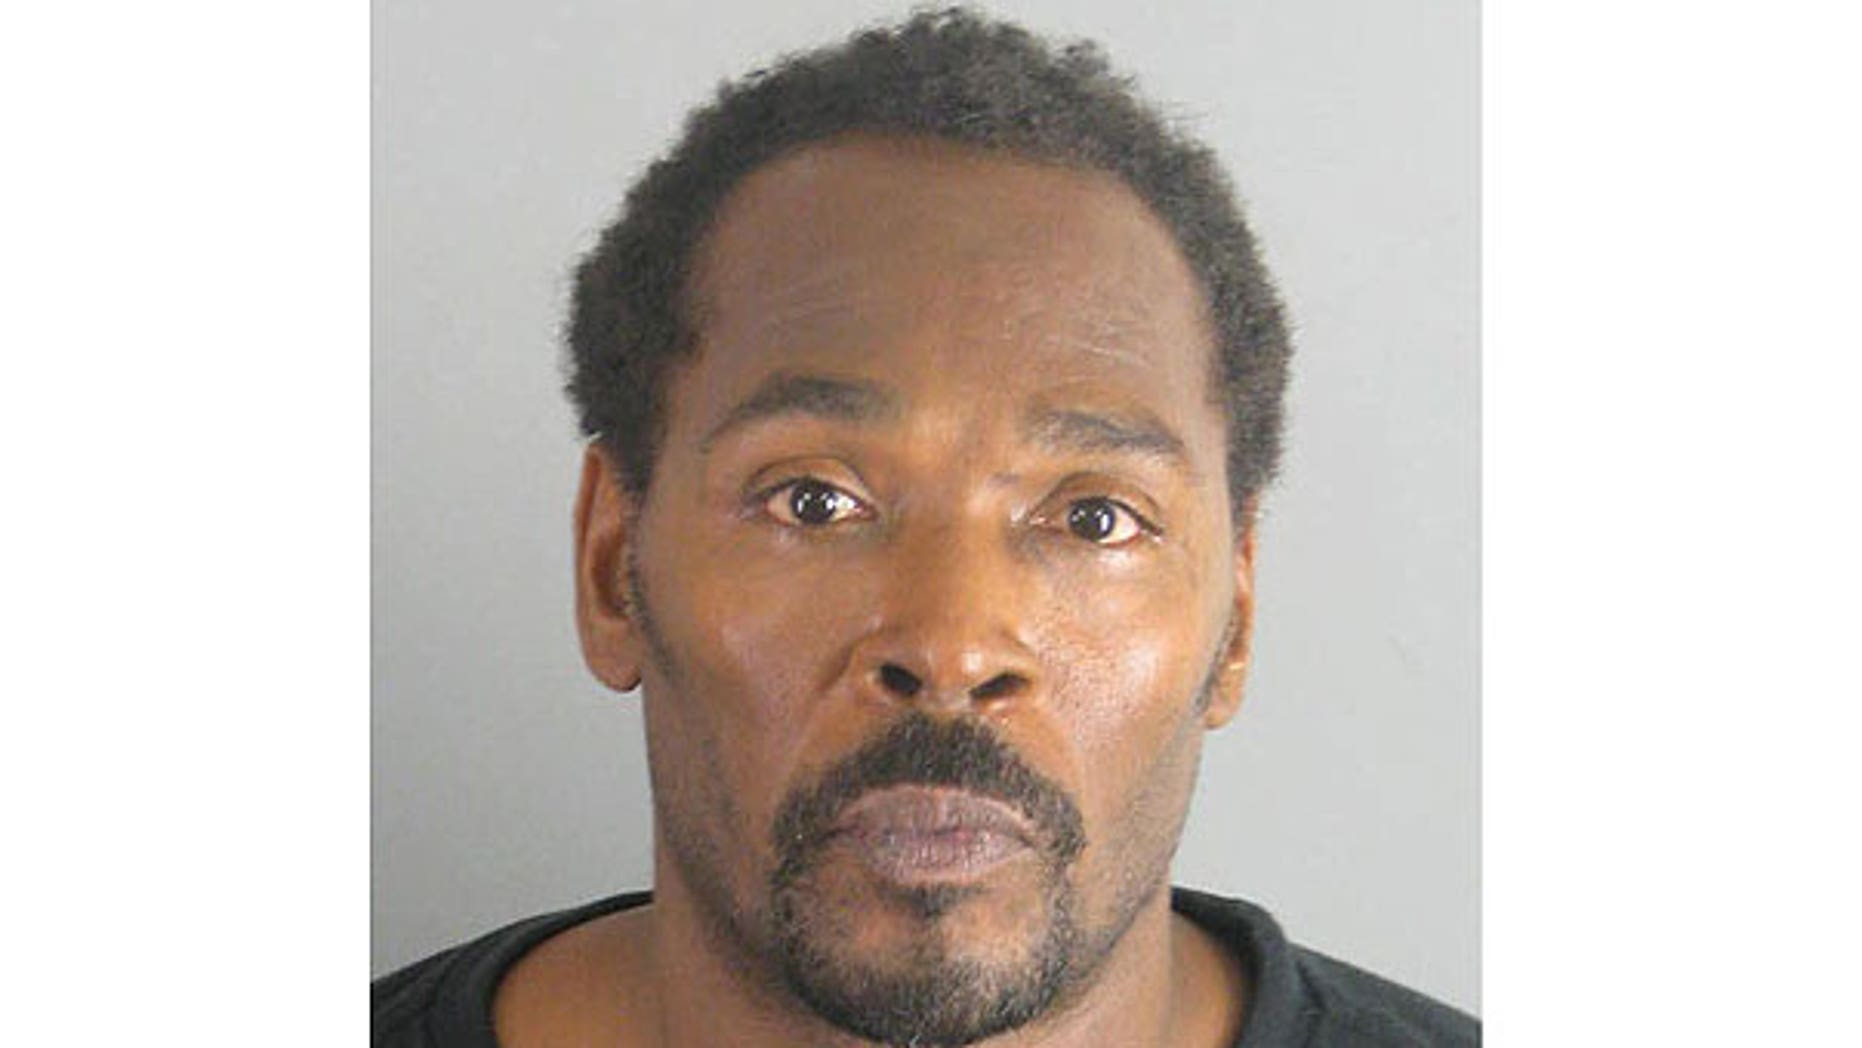 July 12: Rodney King, seen here in a booking handout photo provided by the Riverside County Sheriff's Department .